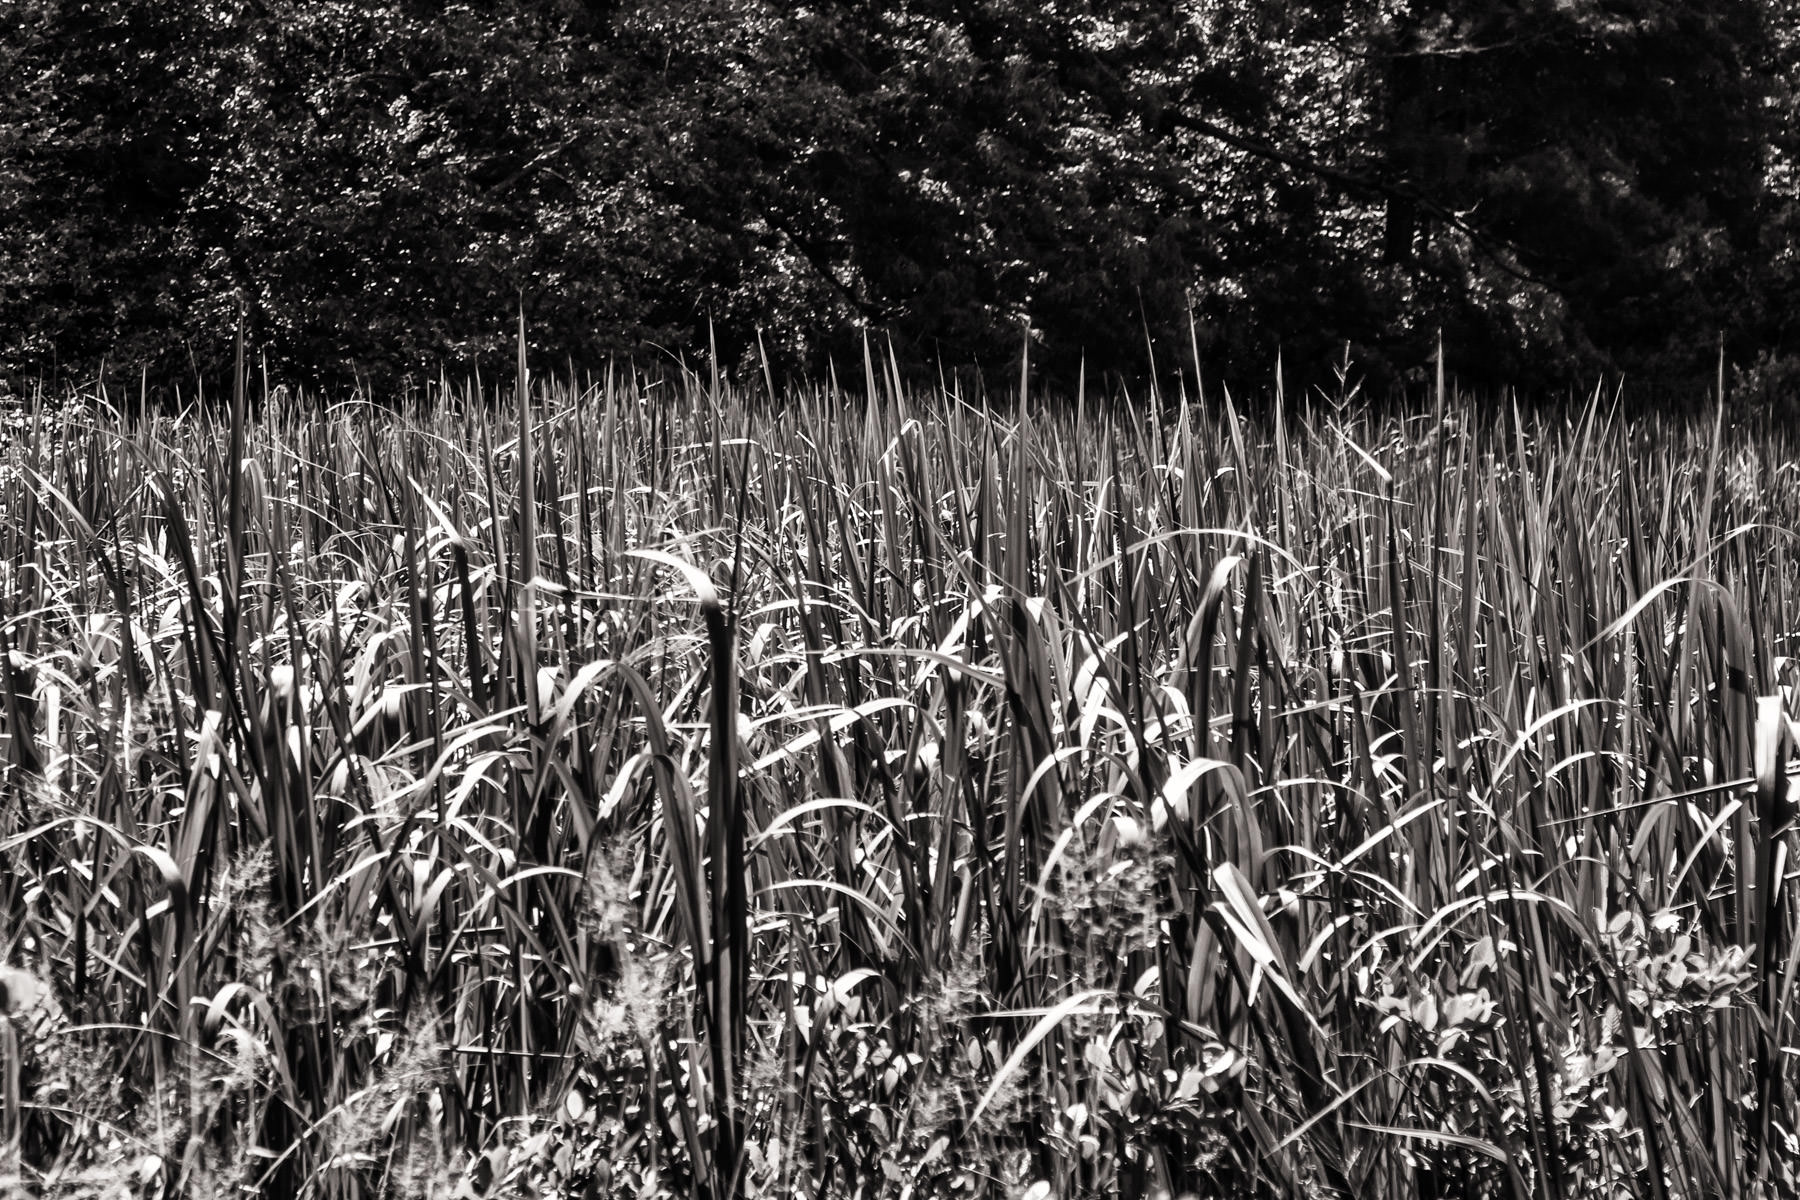 Tall grass and reeds grow at Tyler State Park, Texas.